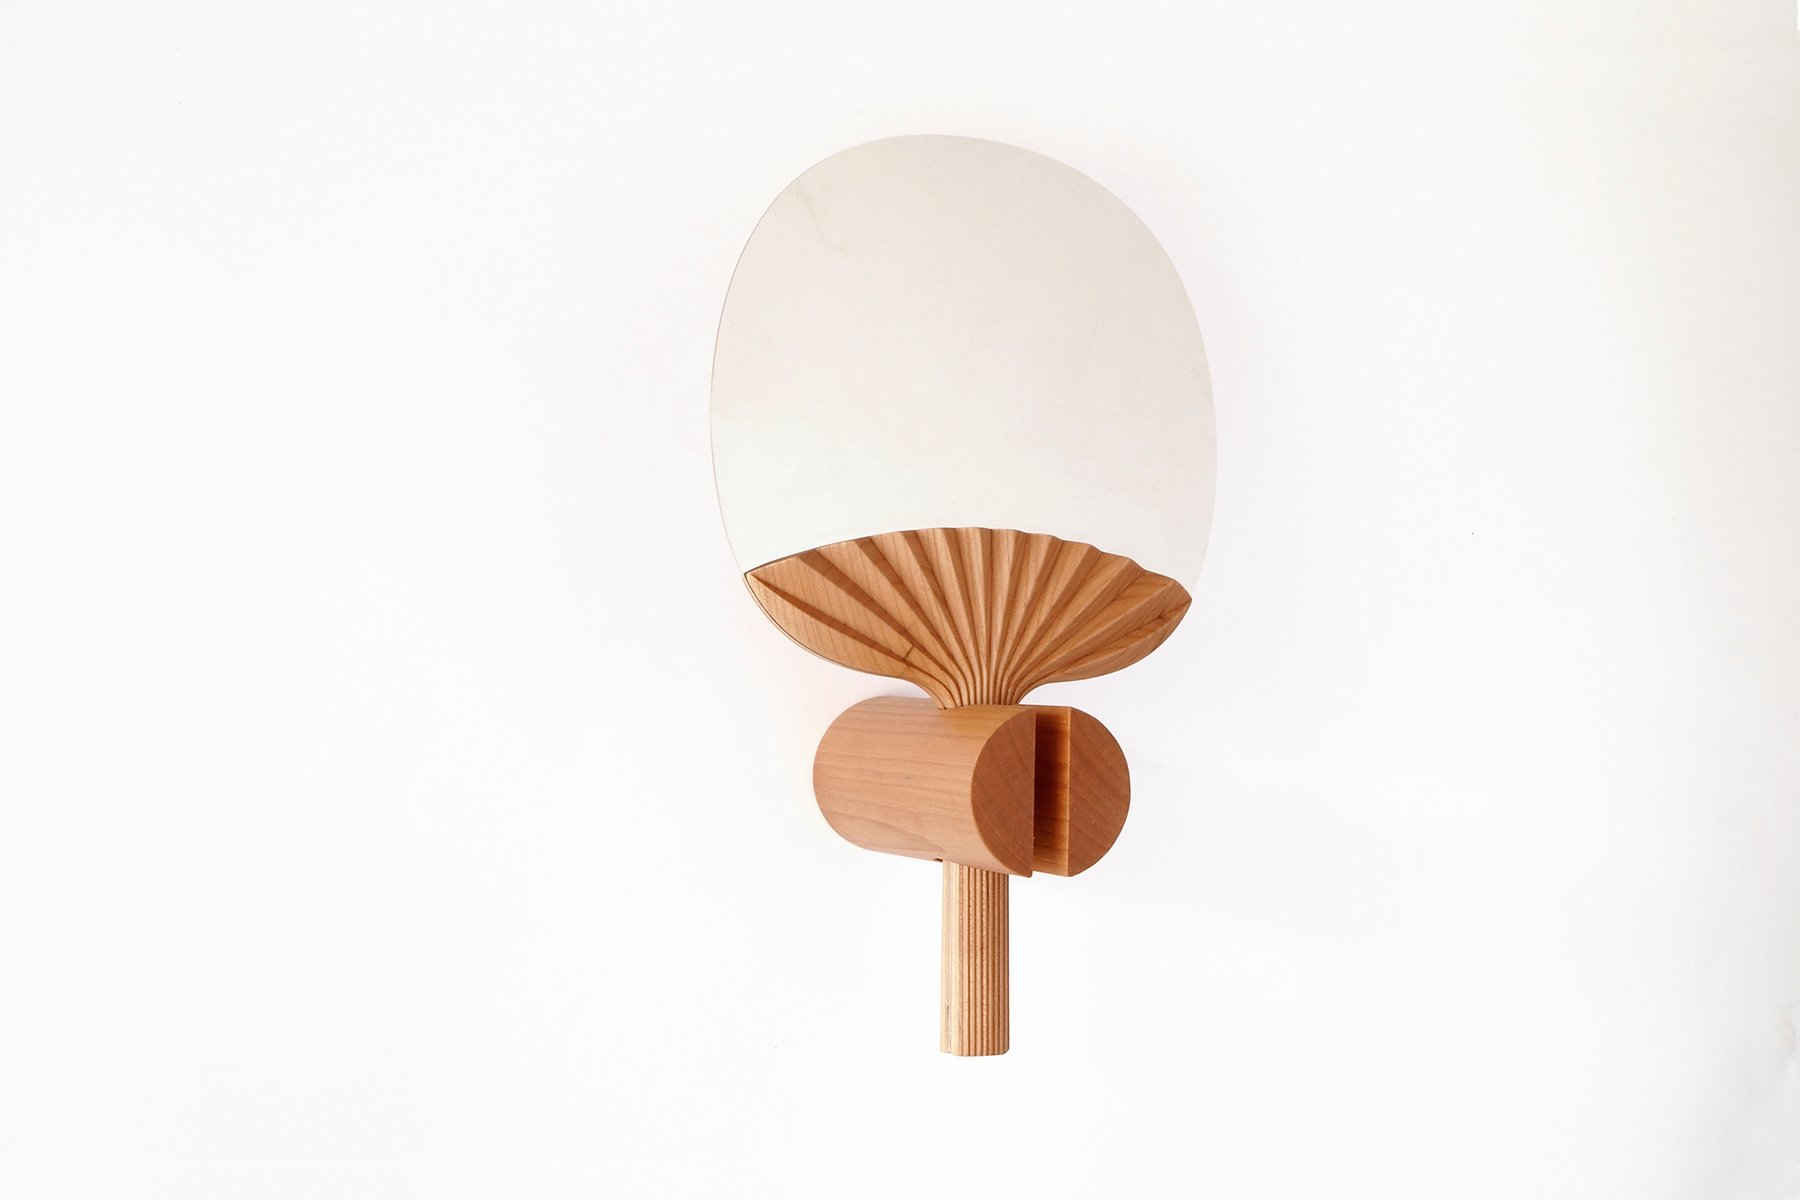 Selfportrait Wall Mirror In Natural Cherry Wood By Studio Lido For Portego